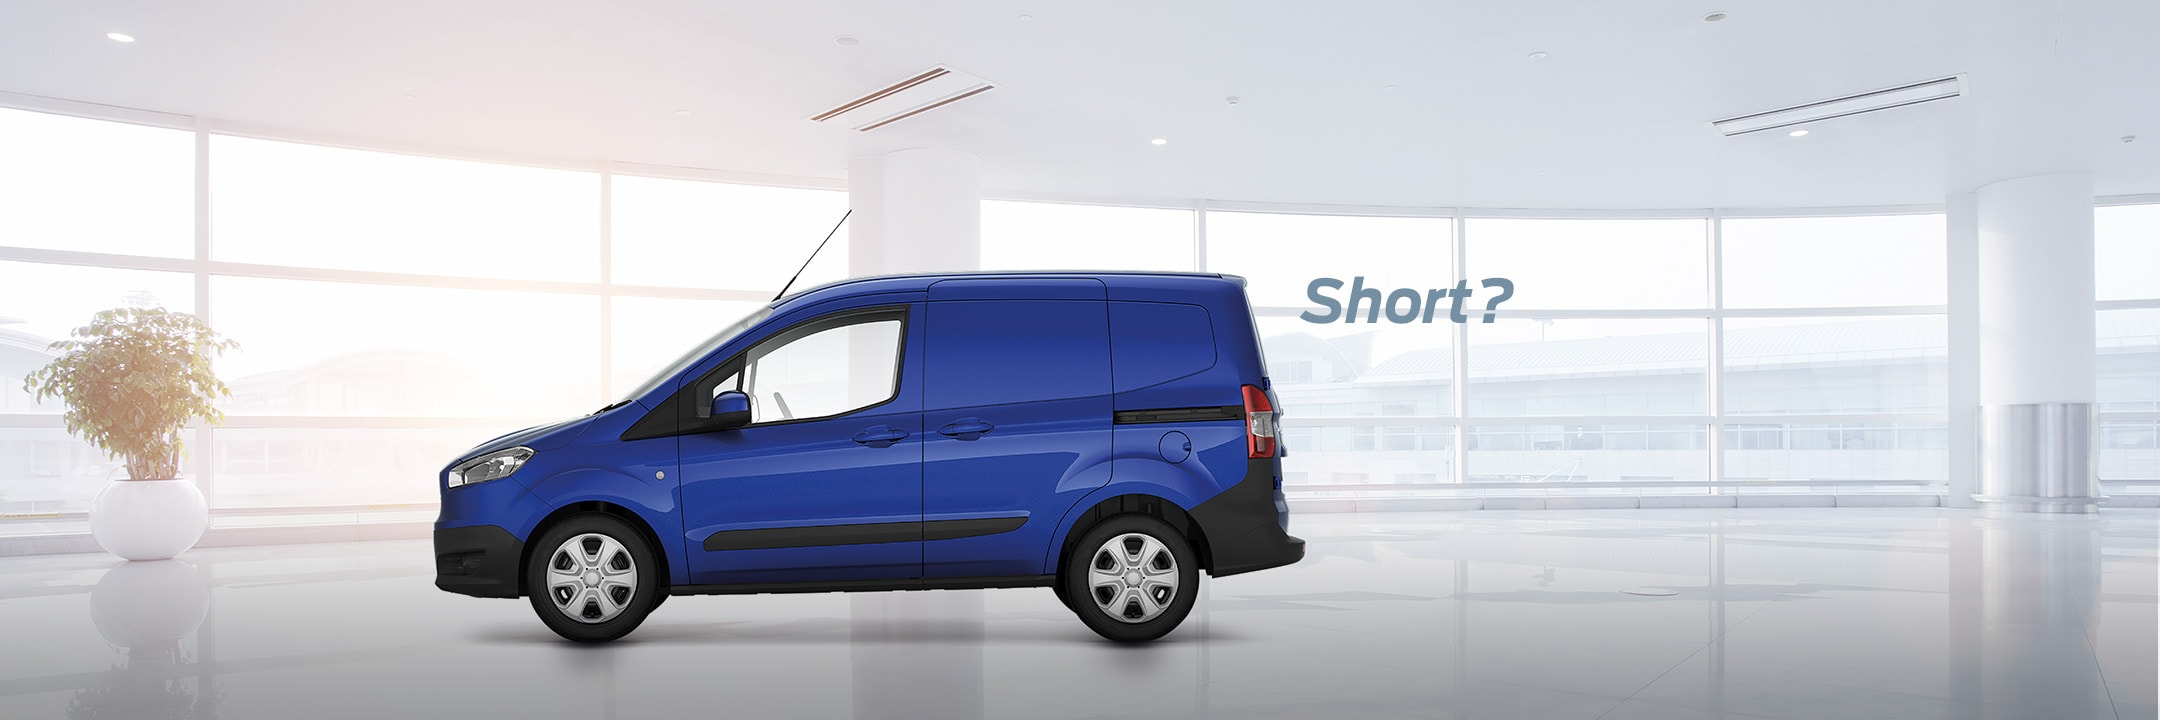 Ford Rental Transit Courier in blue parked in showroom